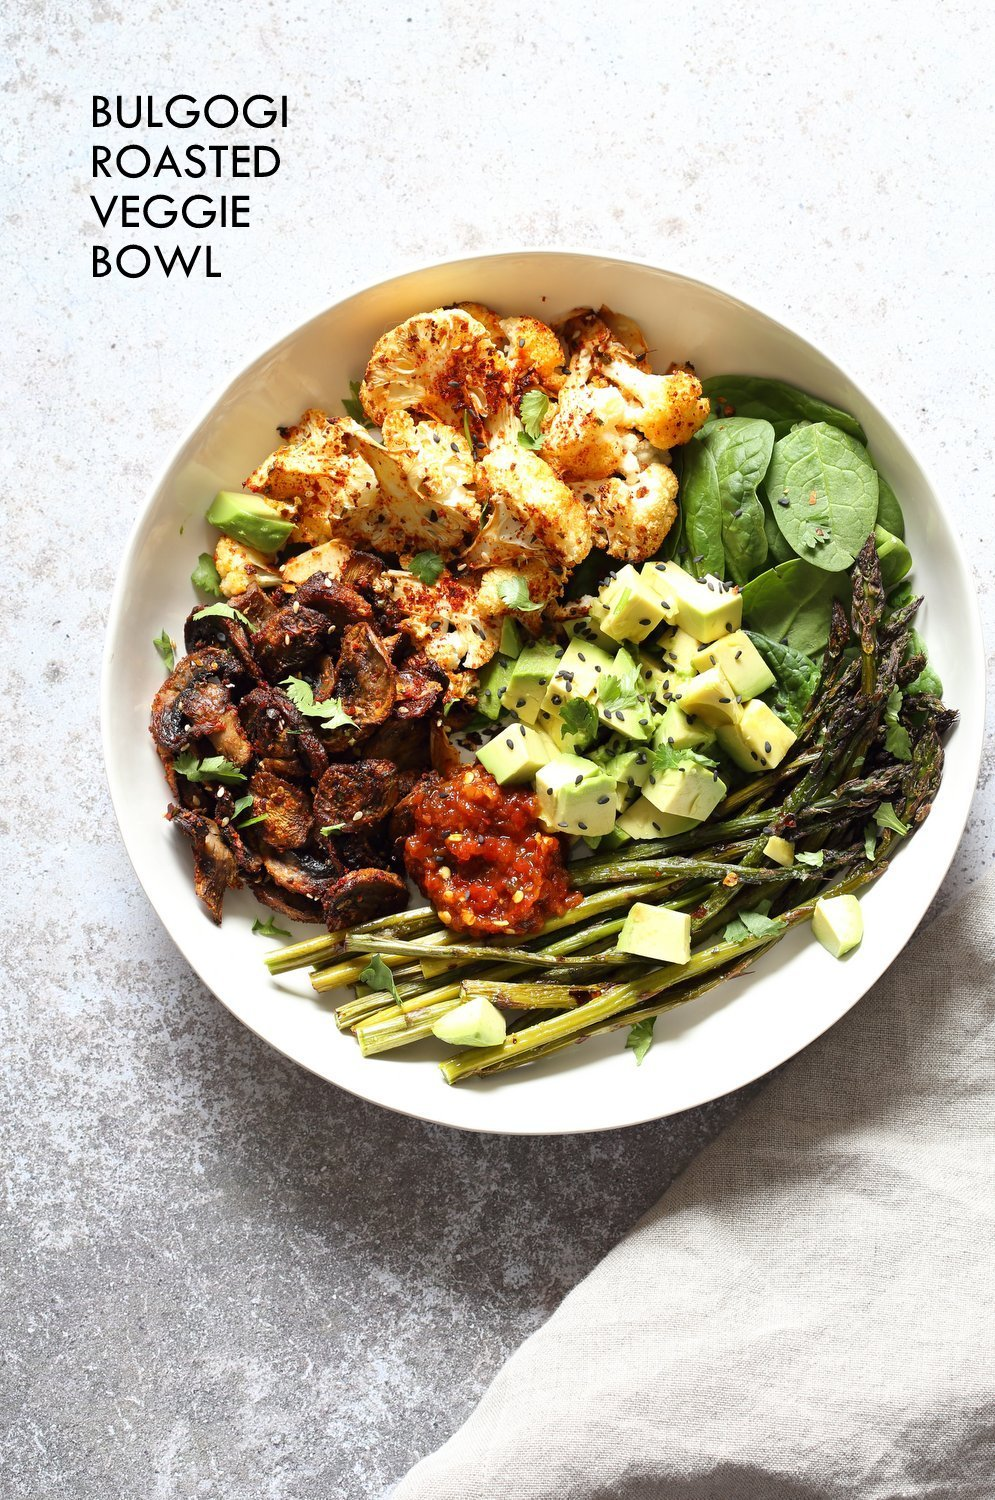 Bulgogi Roasted Spring Veggie Bowl. Spicy, sweet Korean Gochugaru blend roasted Cauliflower Mushroom Asparagus Bowl. #Vegan #Glutenfree #Nutfree #Recipe #VeganRicha | VeganRicha.com